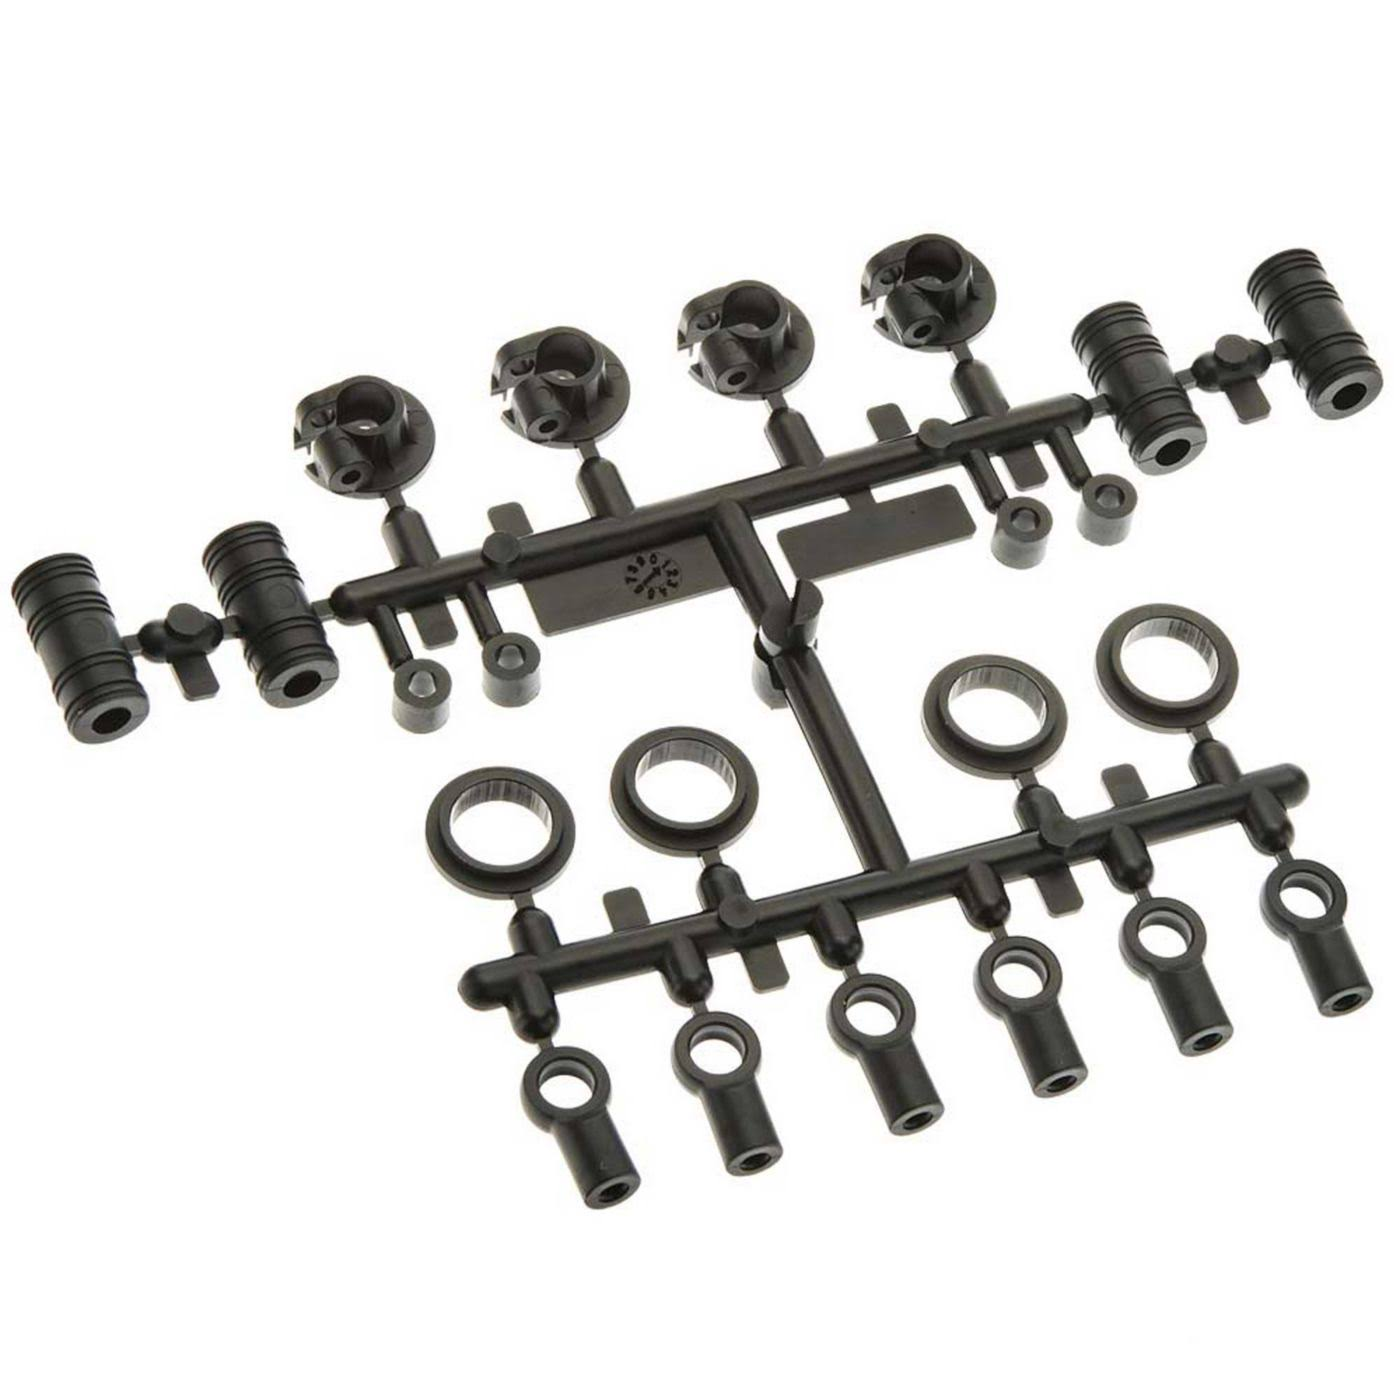 Axial Racing AX31576 Shock Parts